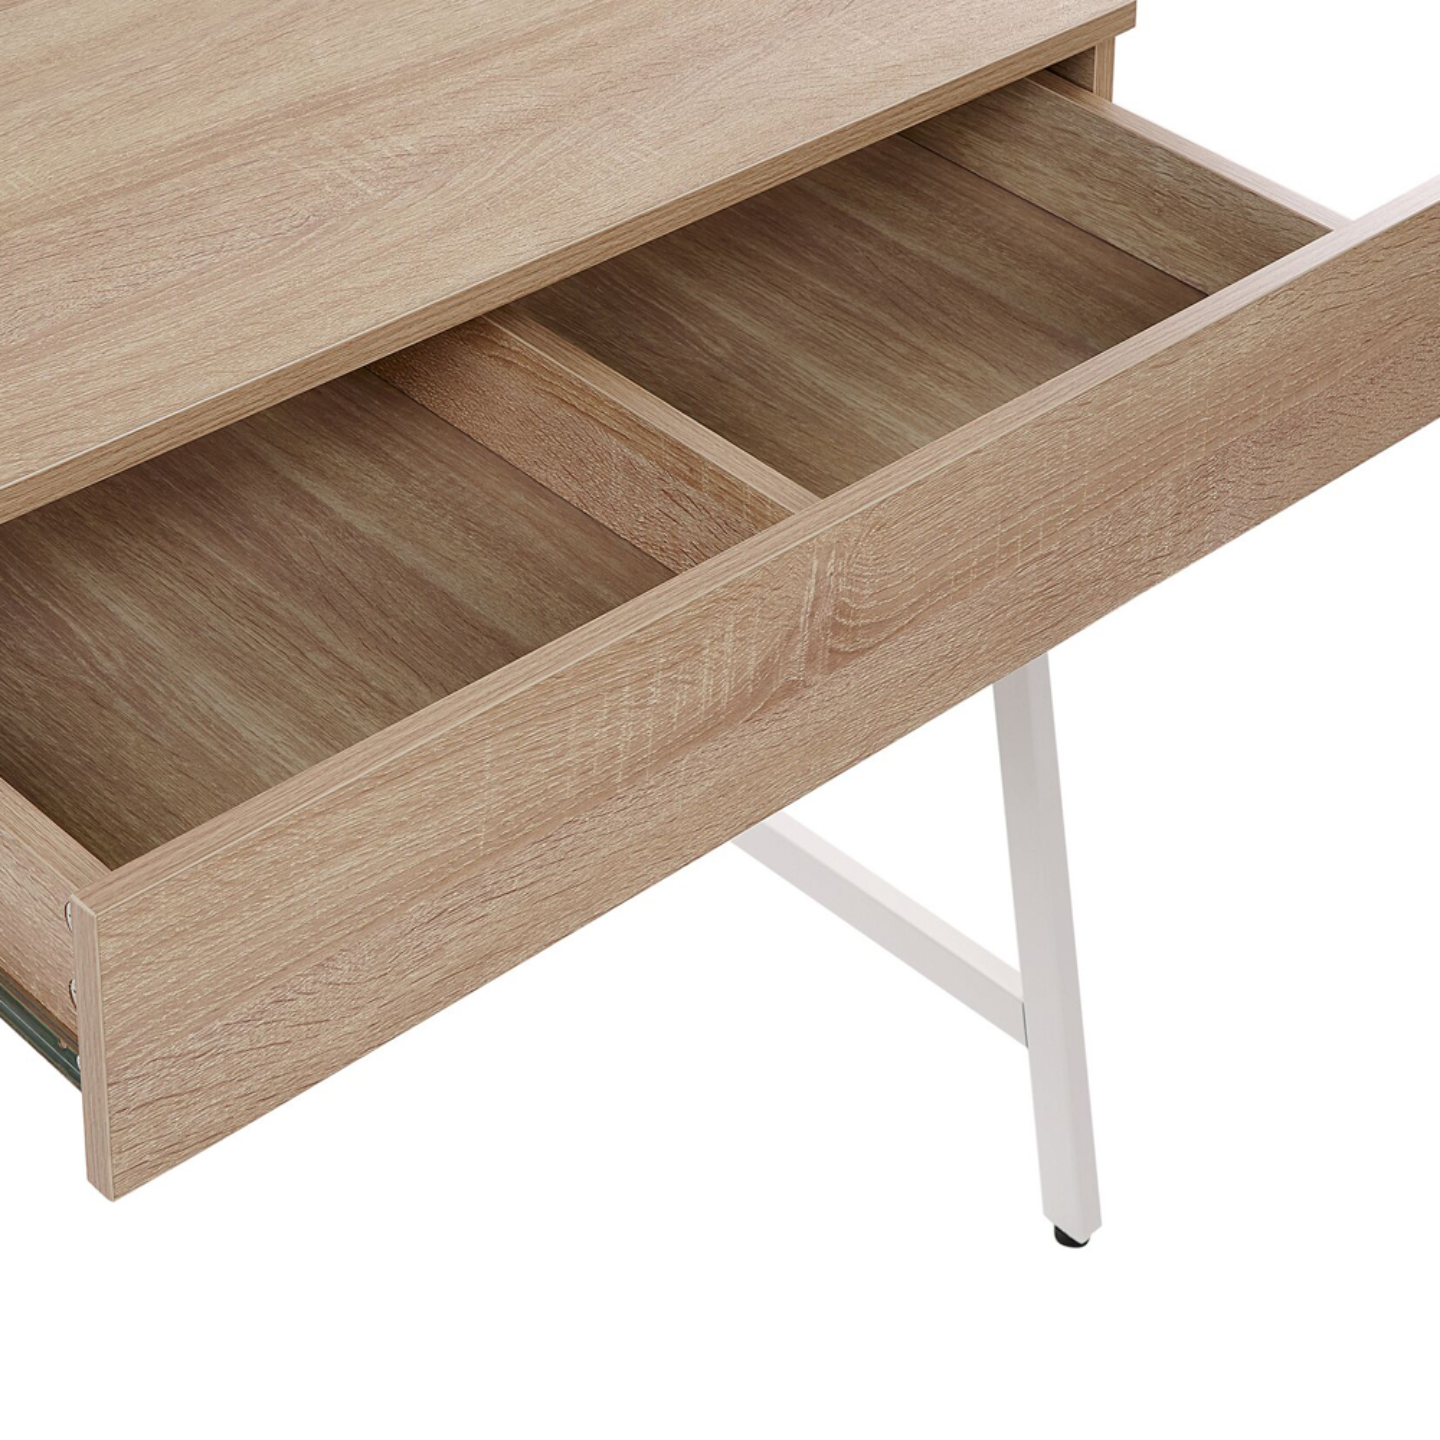 Lifestyle Home Office Table Belgrade